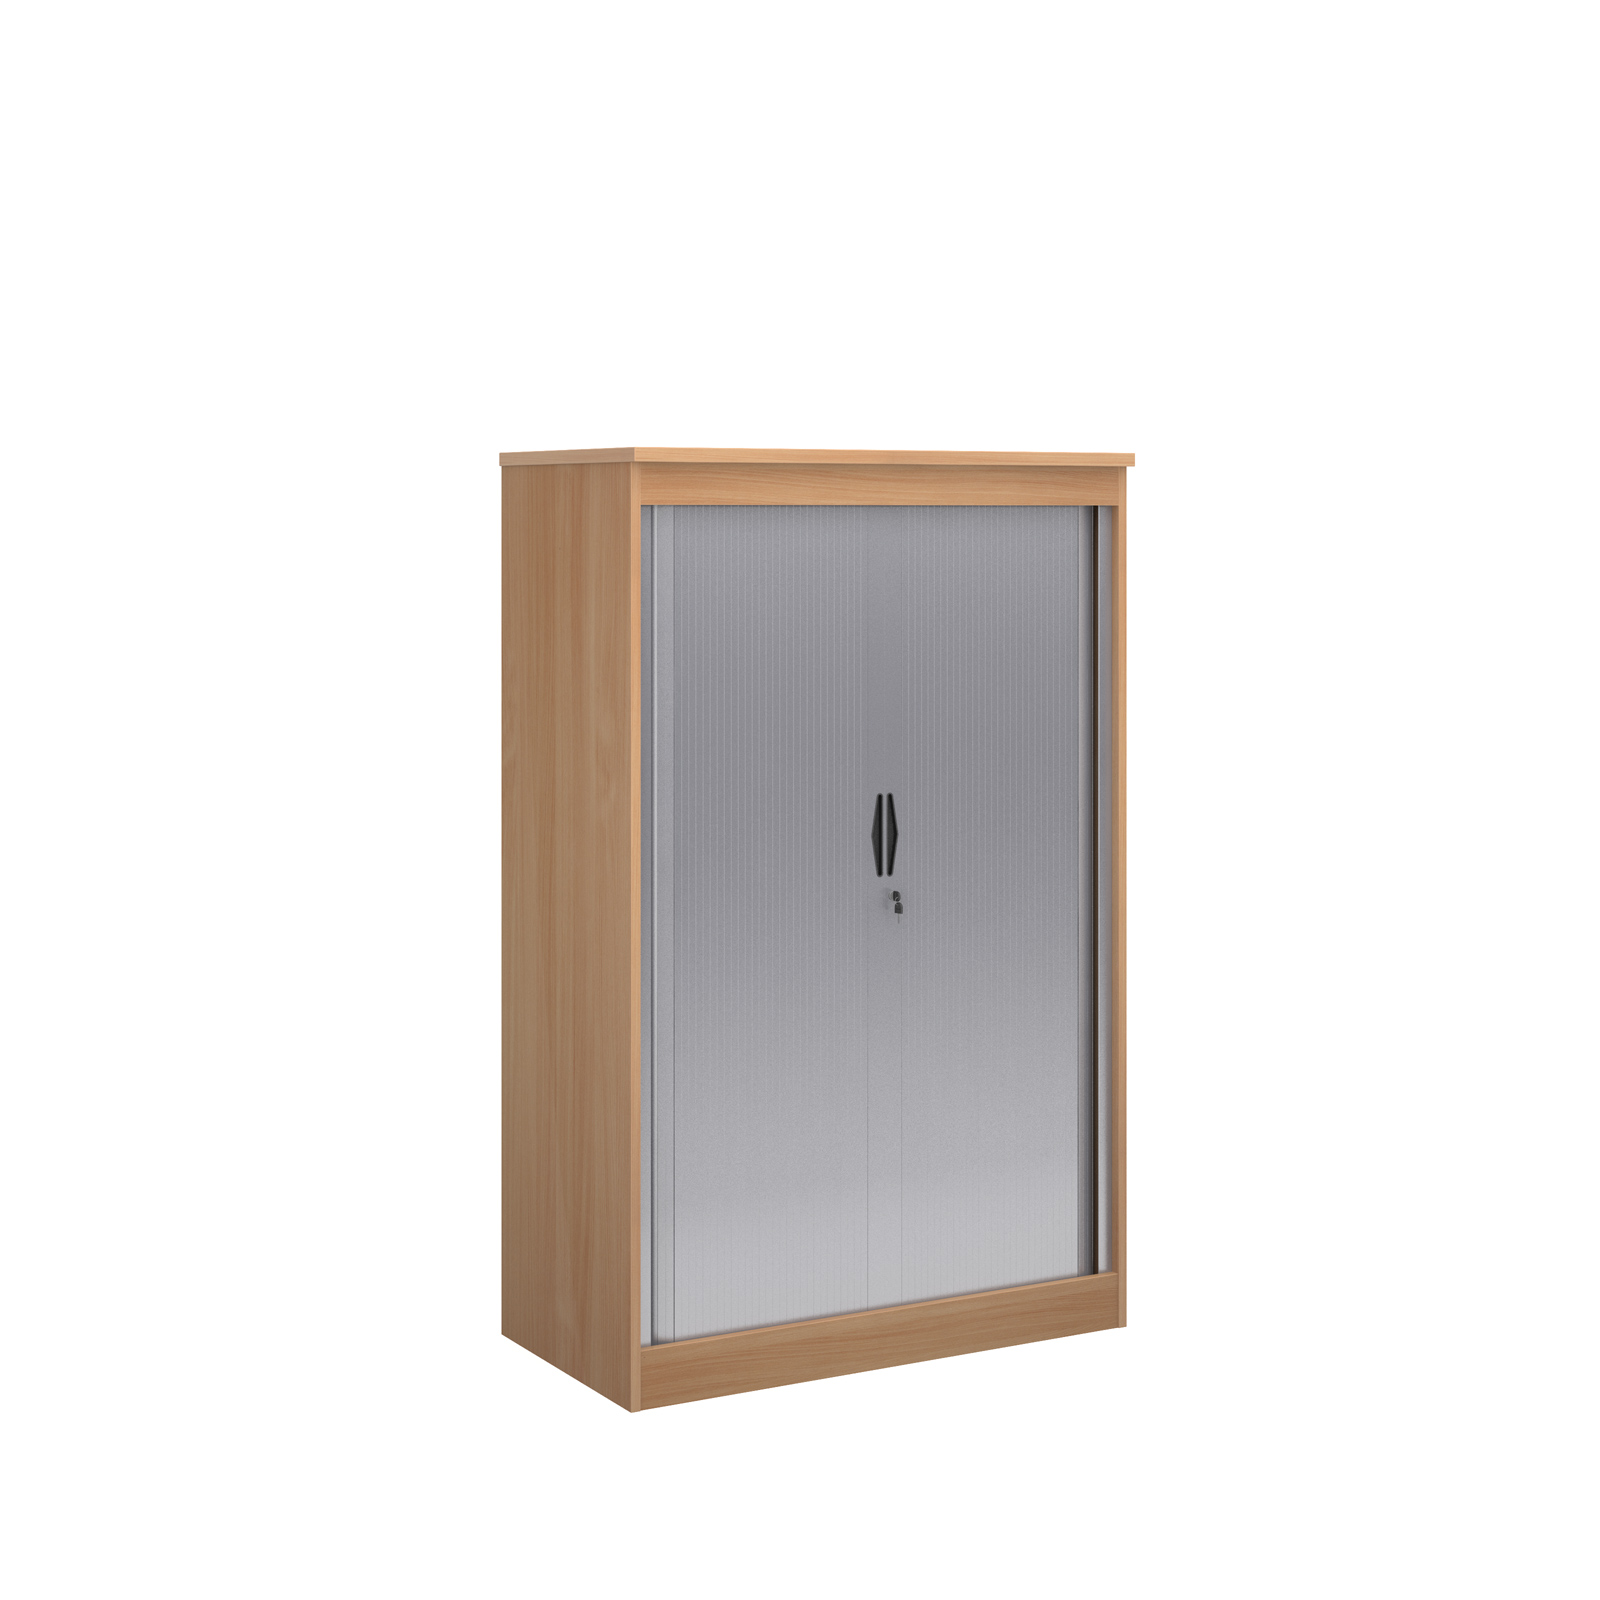 1600mm high system horizontal tambour door cupboard in beech